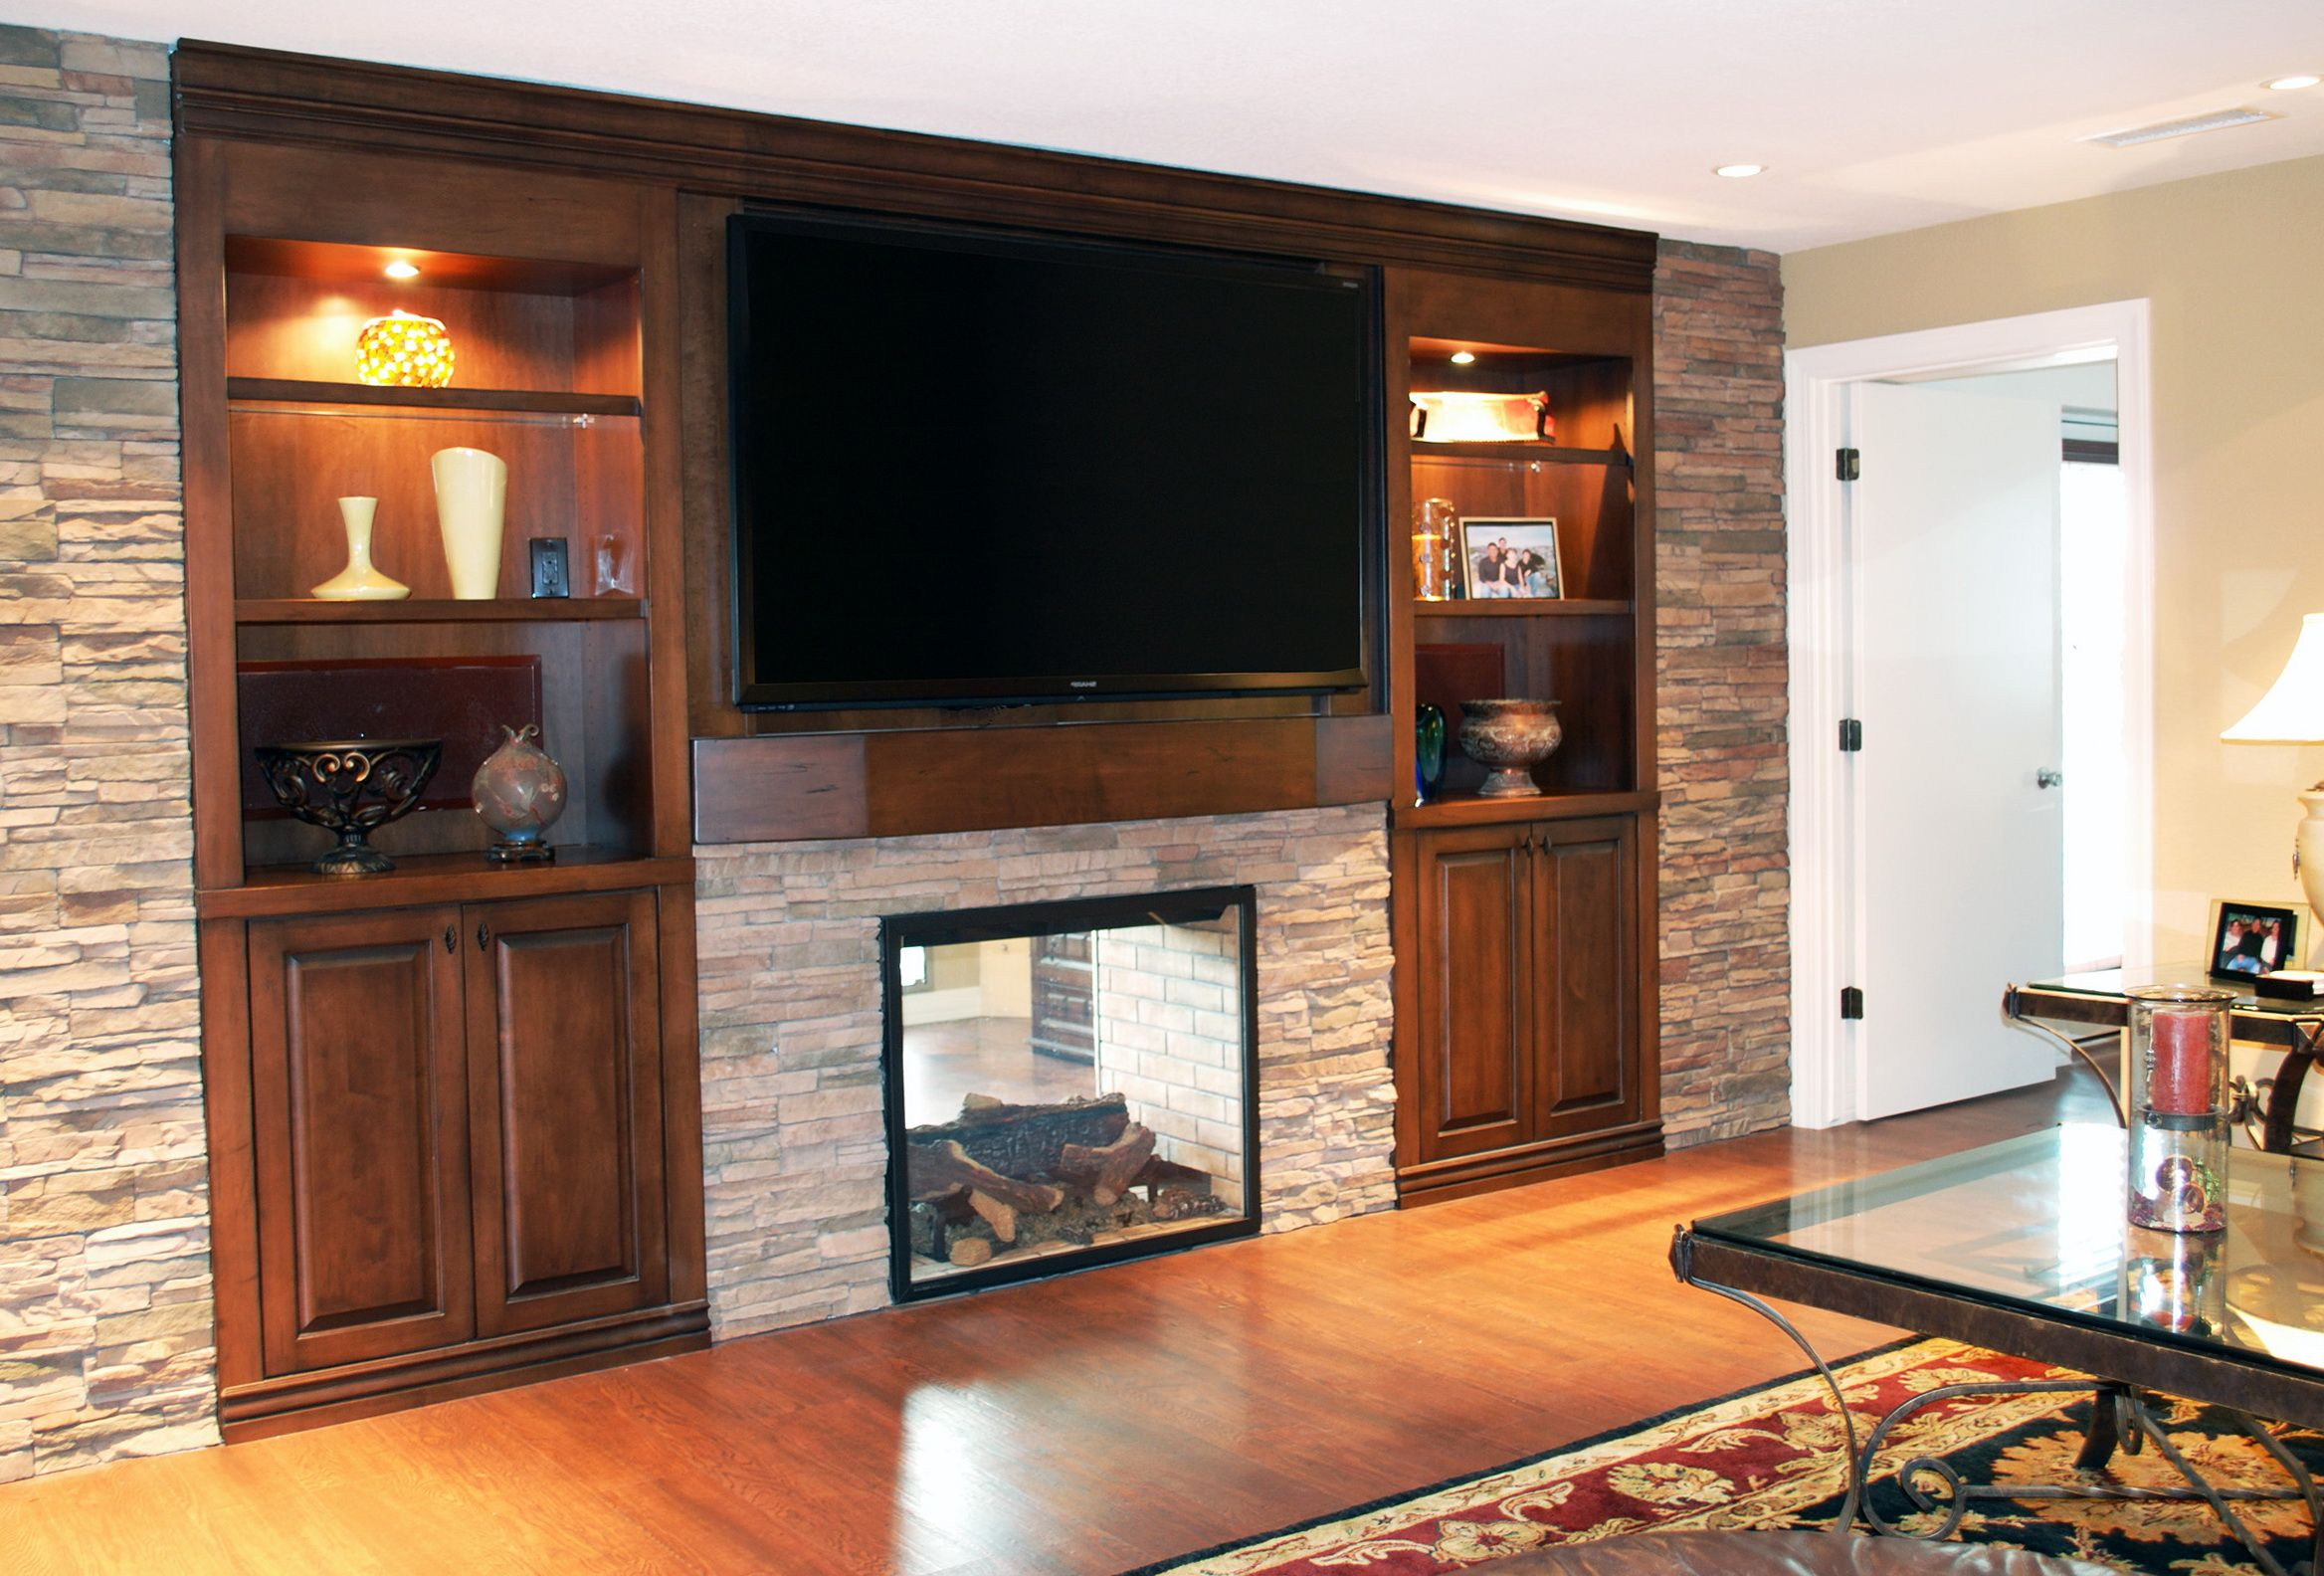 Wall Entertainment Center With Fireplace | Fireplace ...